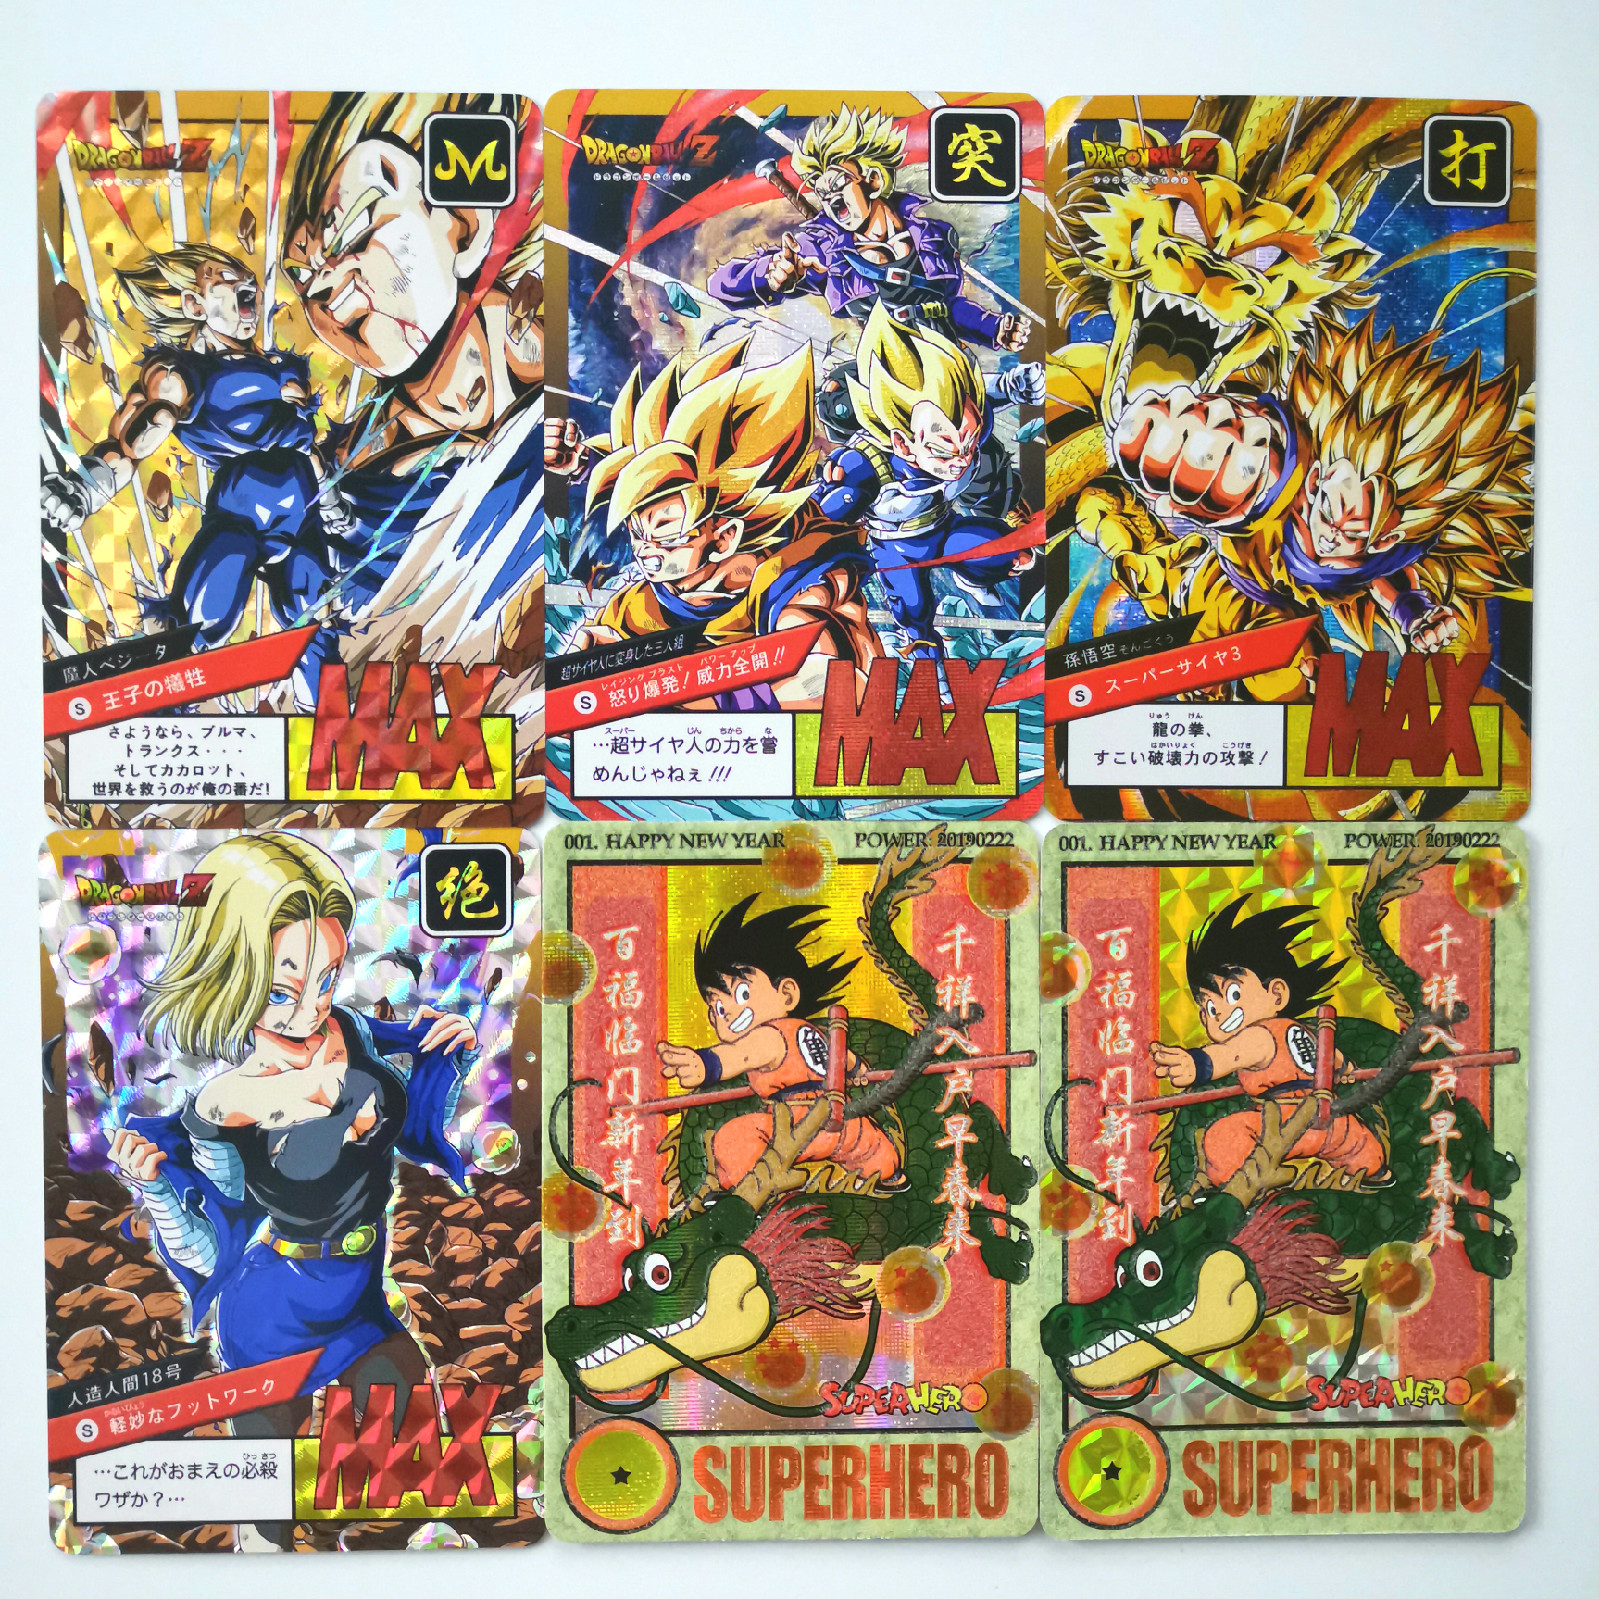 9 IN 1 Super Dragon Ball Limited To 50 Sets Heroes Battle Card Ultra Instinct Goku Vegeta Game Collection Anime Cards